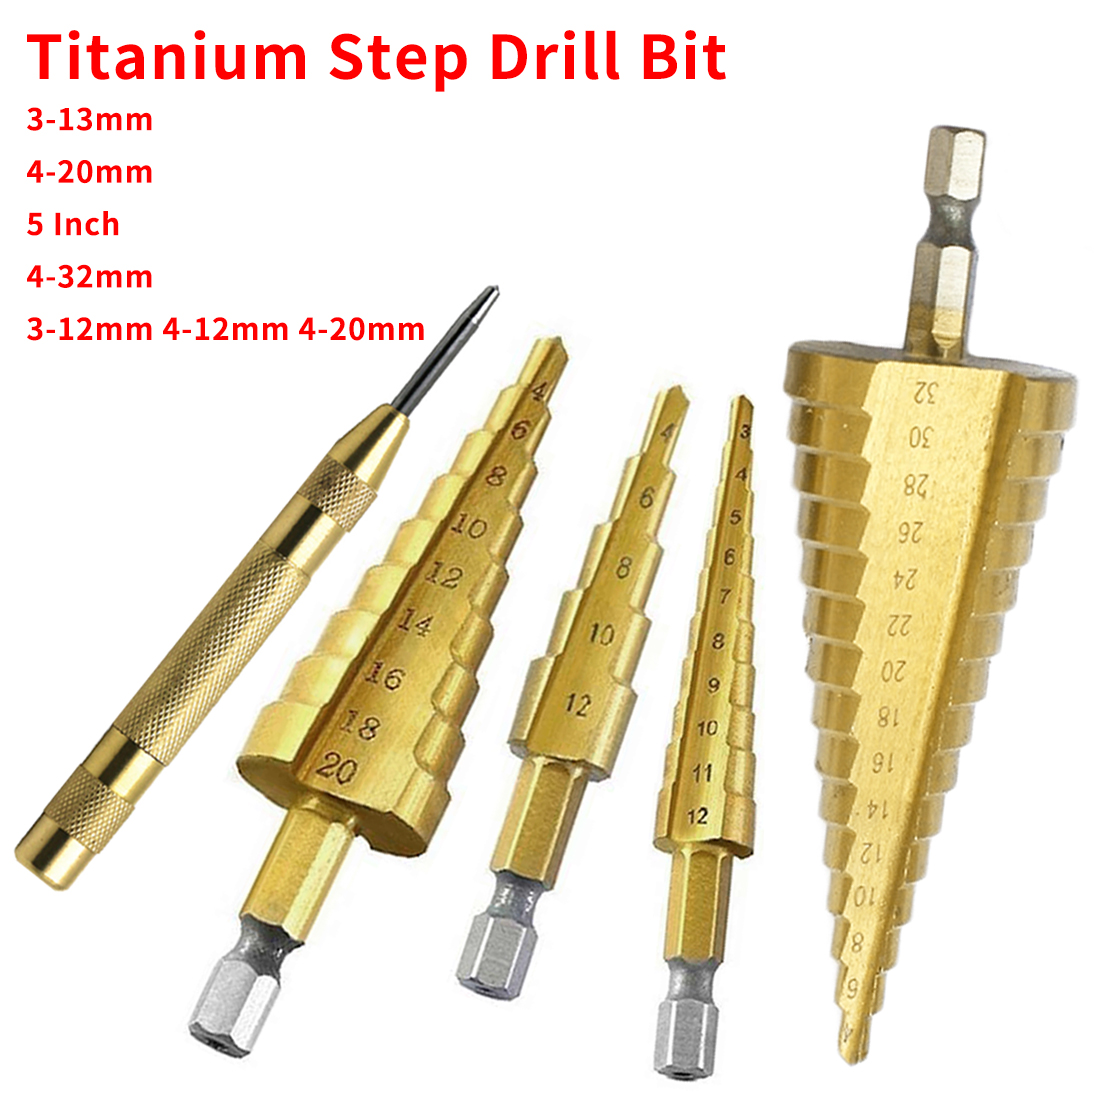 3pcs HSS Steel Titanium Step Drill Bit 3-12mm 4-12mm 4-20mm Step Cone Cutt Tools Metal Drill Bit Set For Woodworking Wood